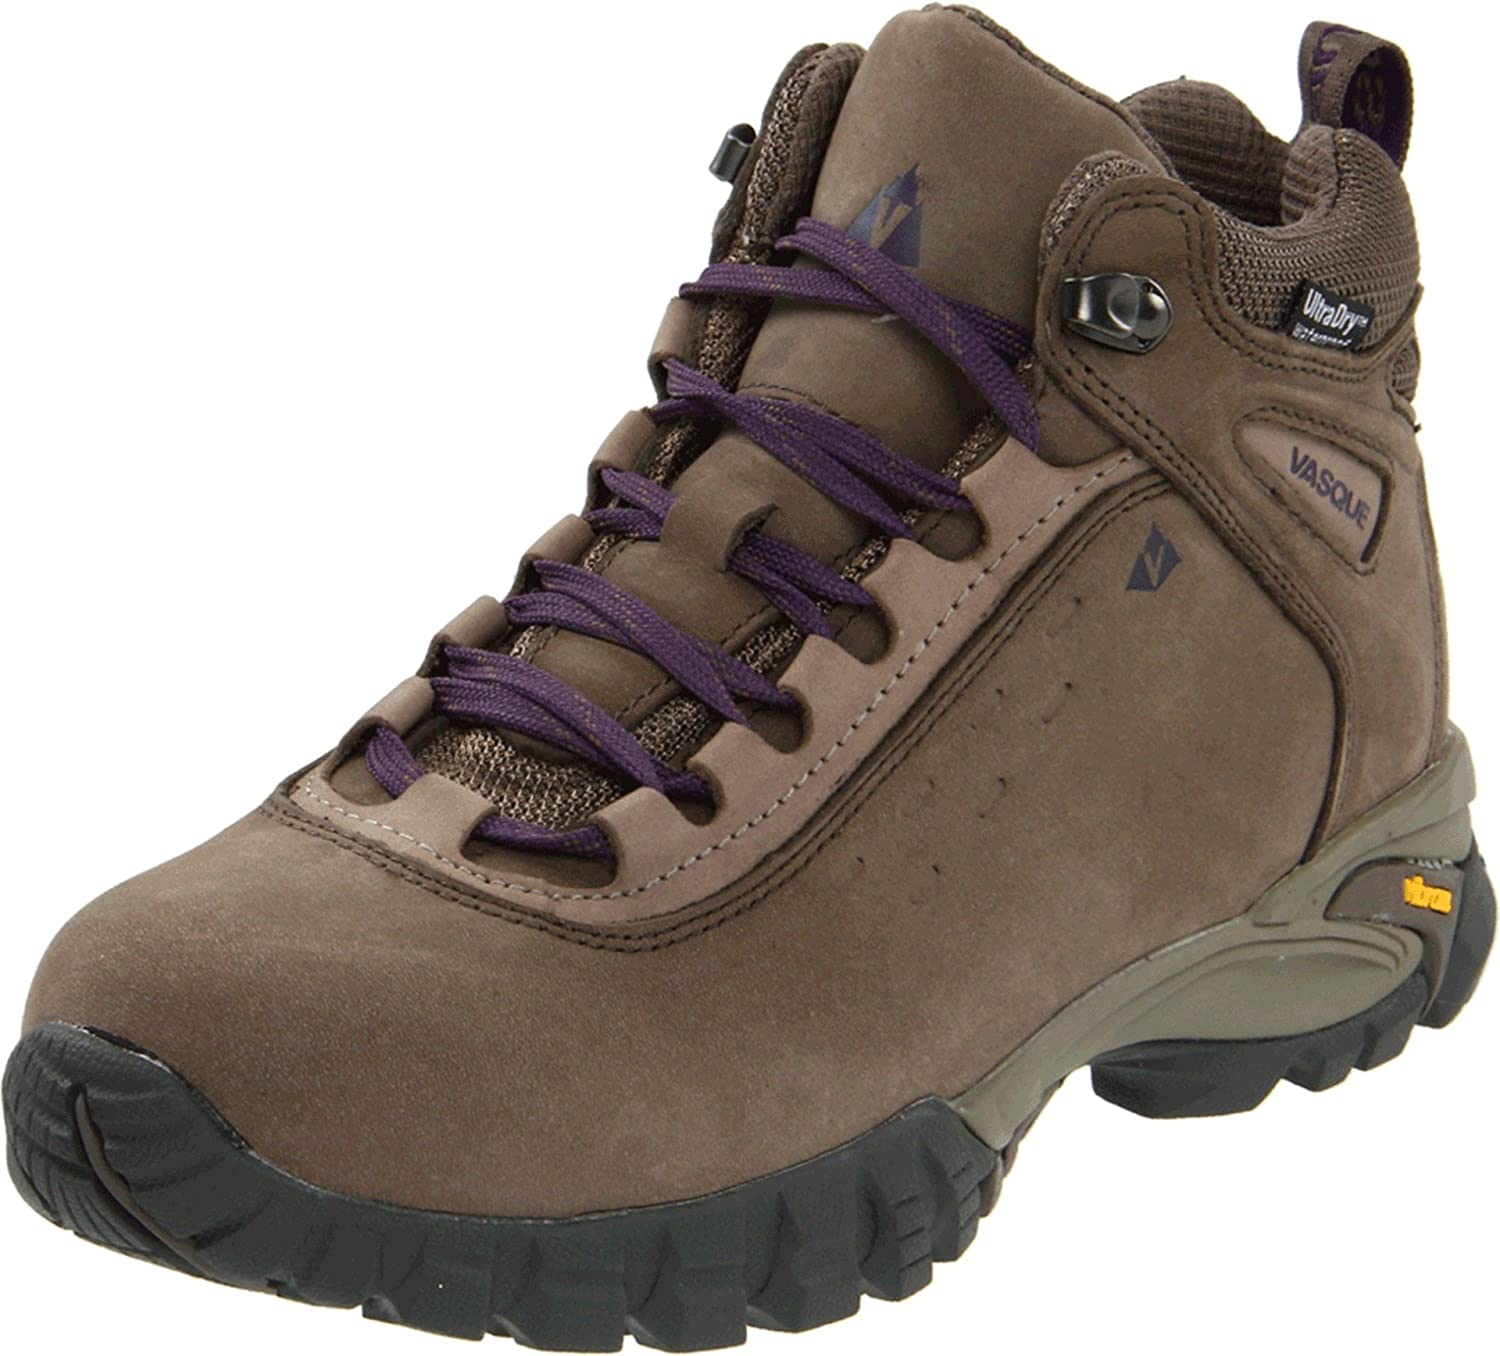 Vasque Women's Talus Waterproof Hiking Shoe B005EQ9AQA 9 B(M) US|Bungee Cord/Purple Plumeria